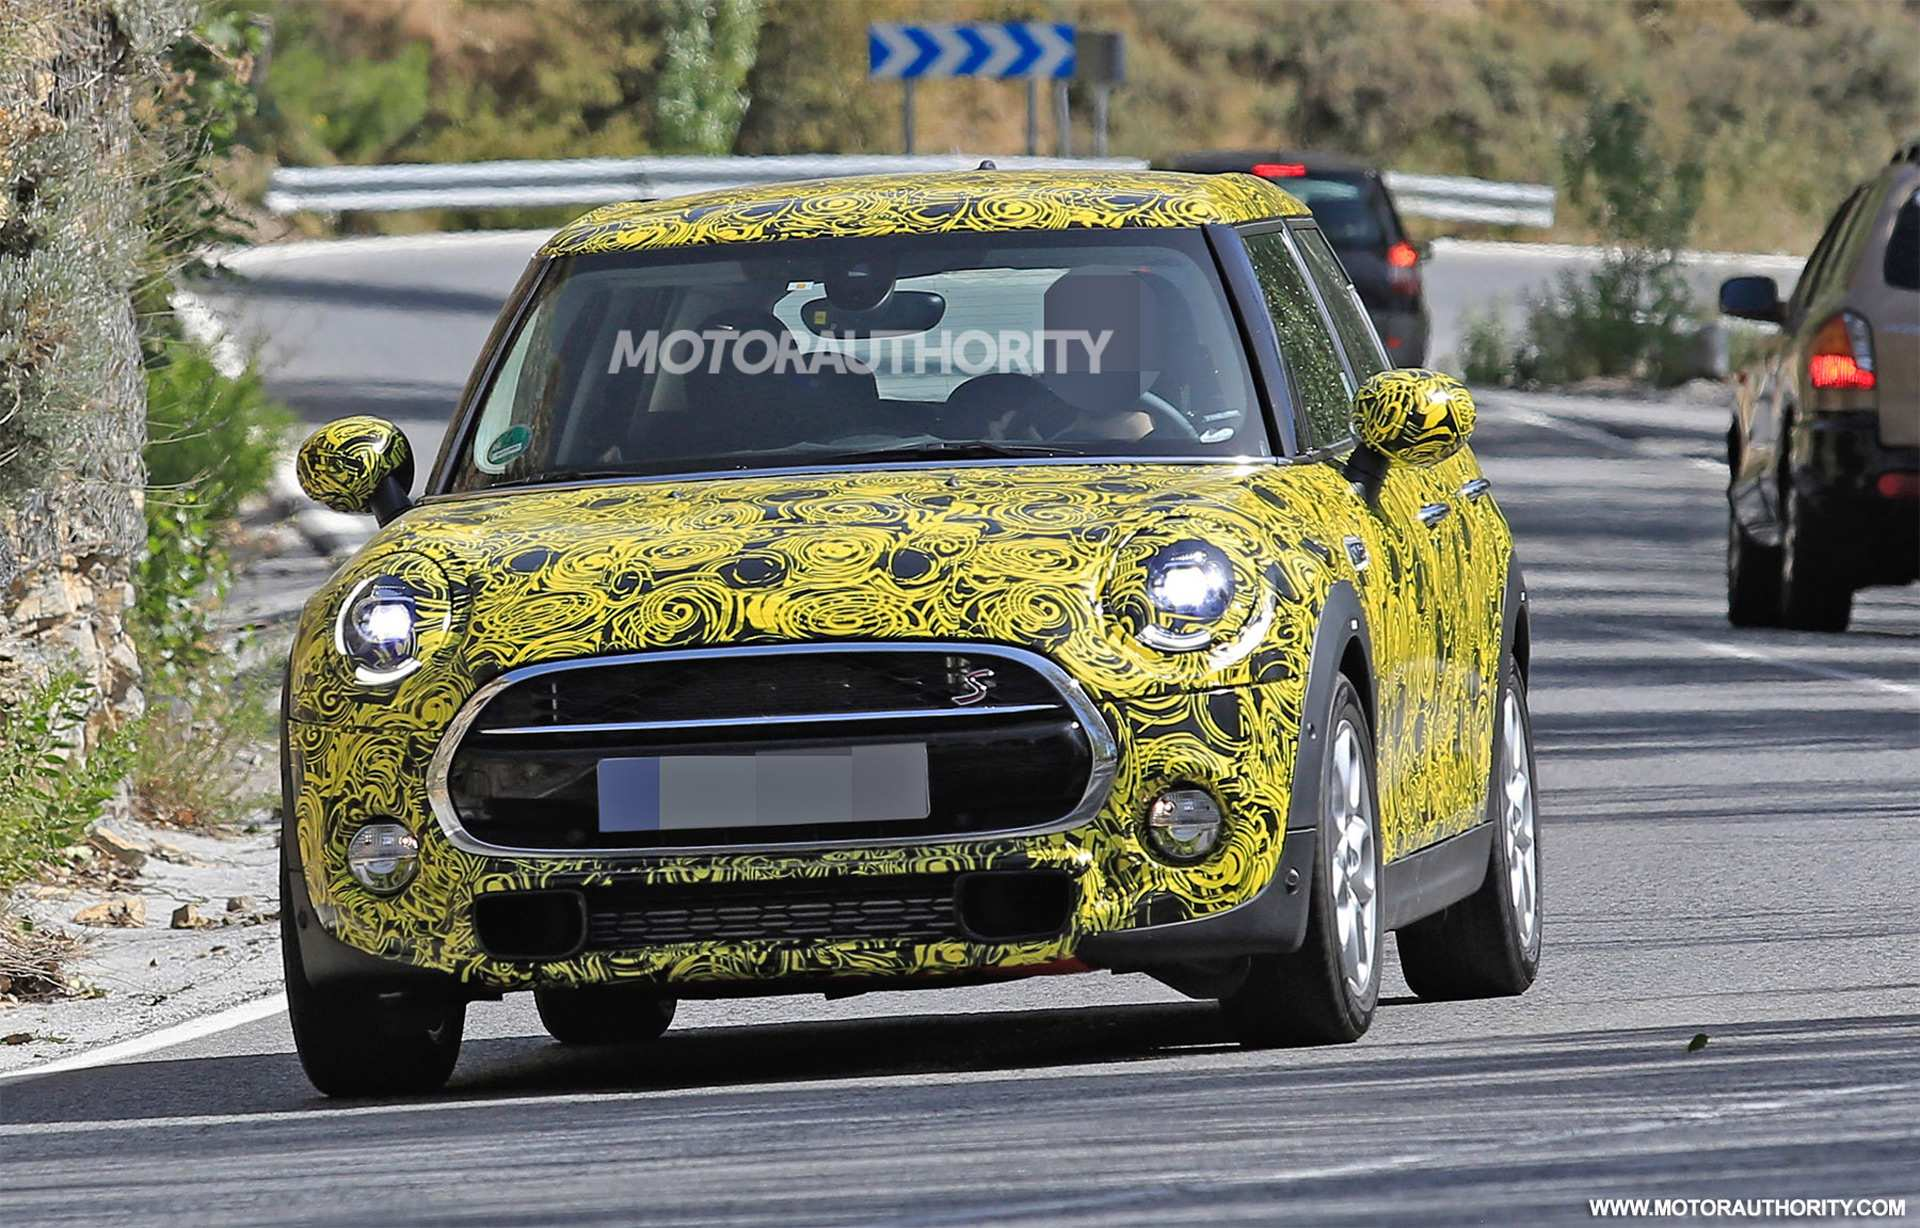 84 Great 2019 Mini Cooper Spy Shots Speed Test by 2019 Mini Cooper Spy Shots